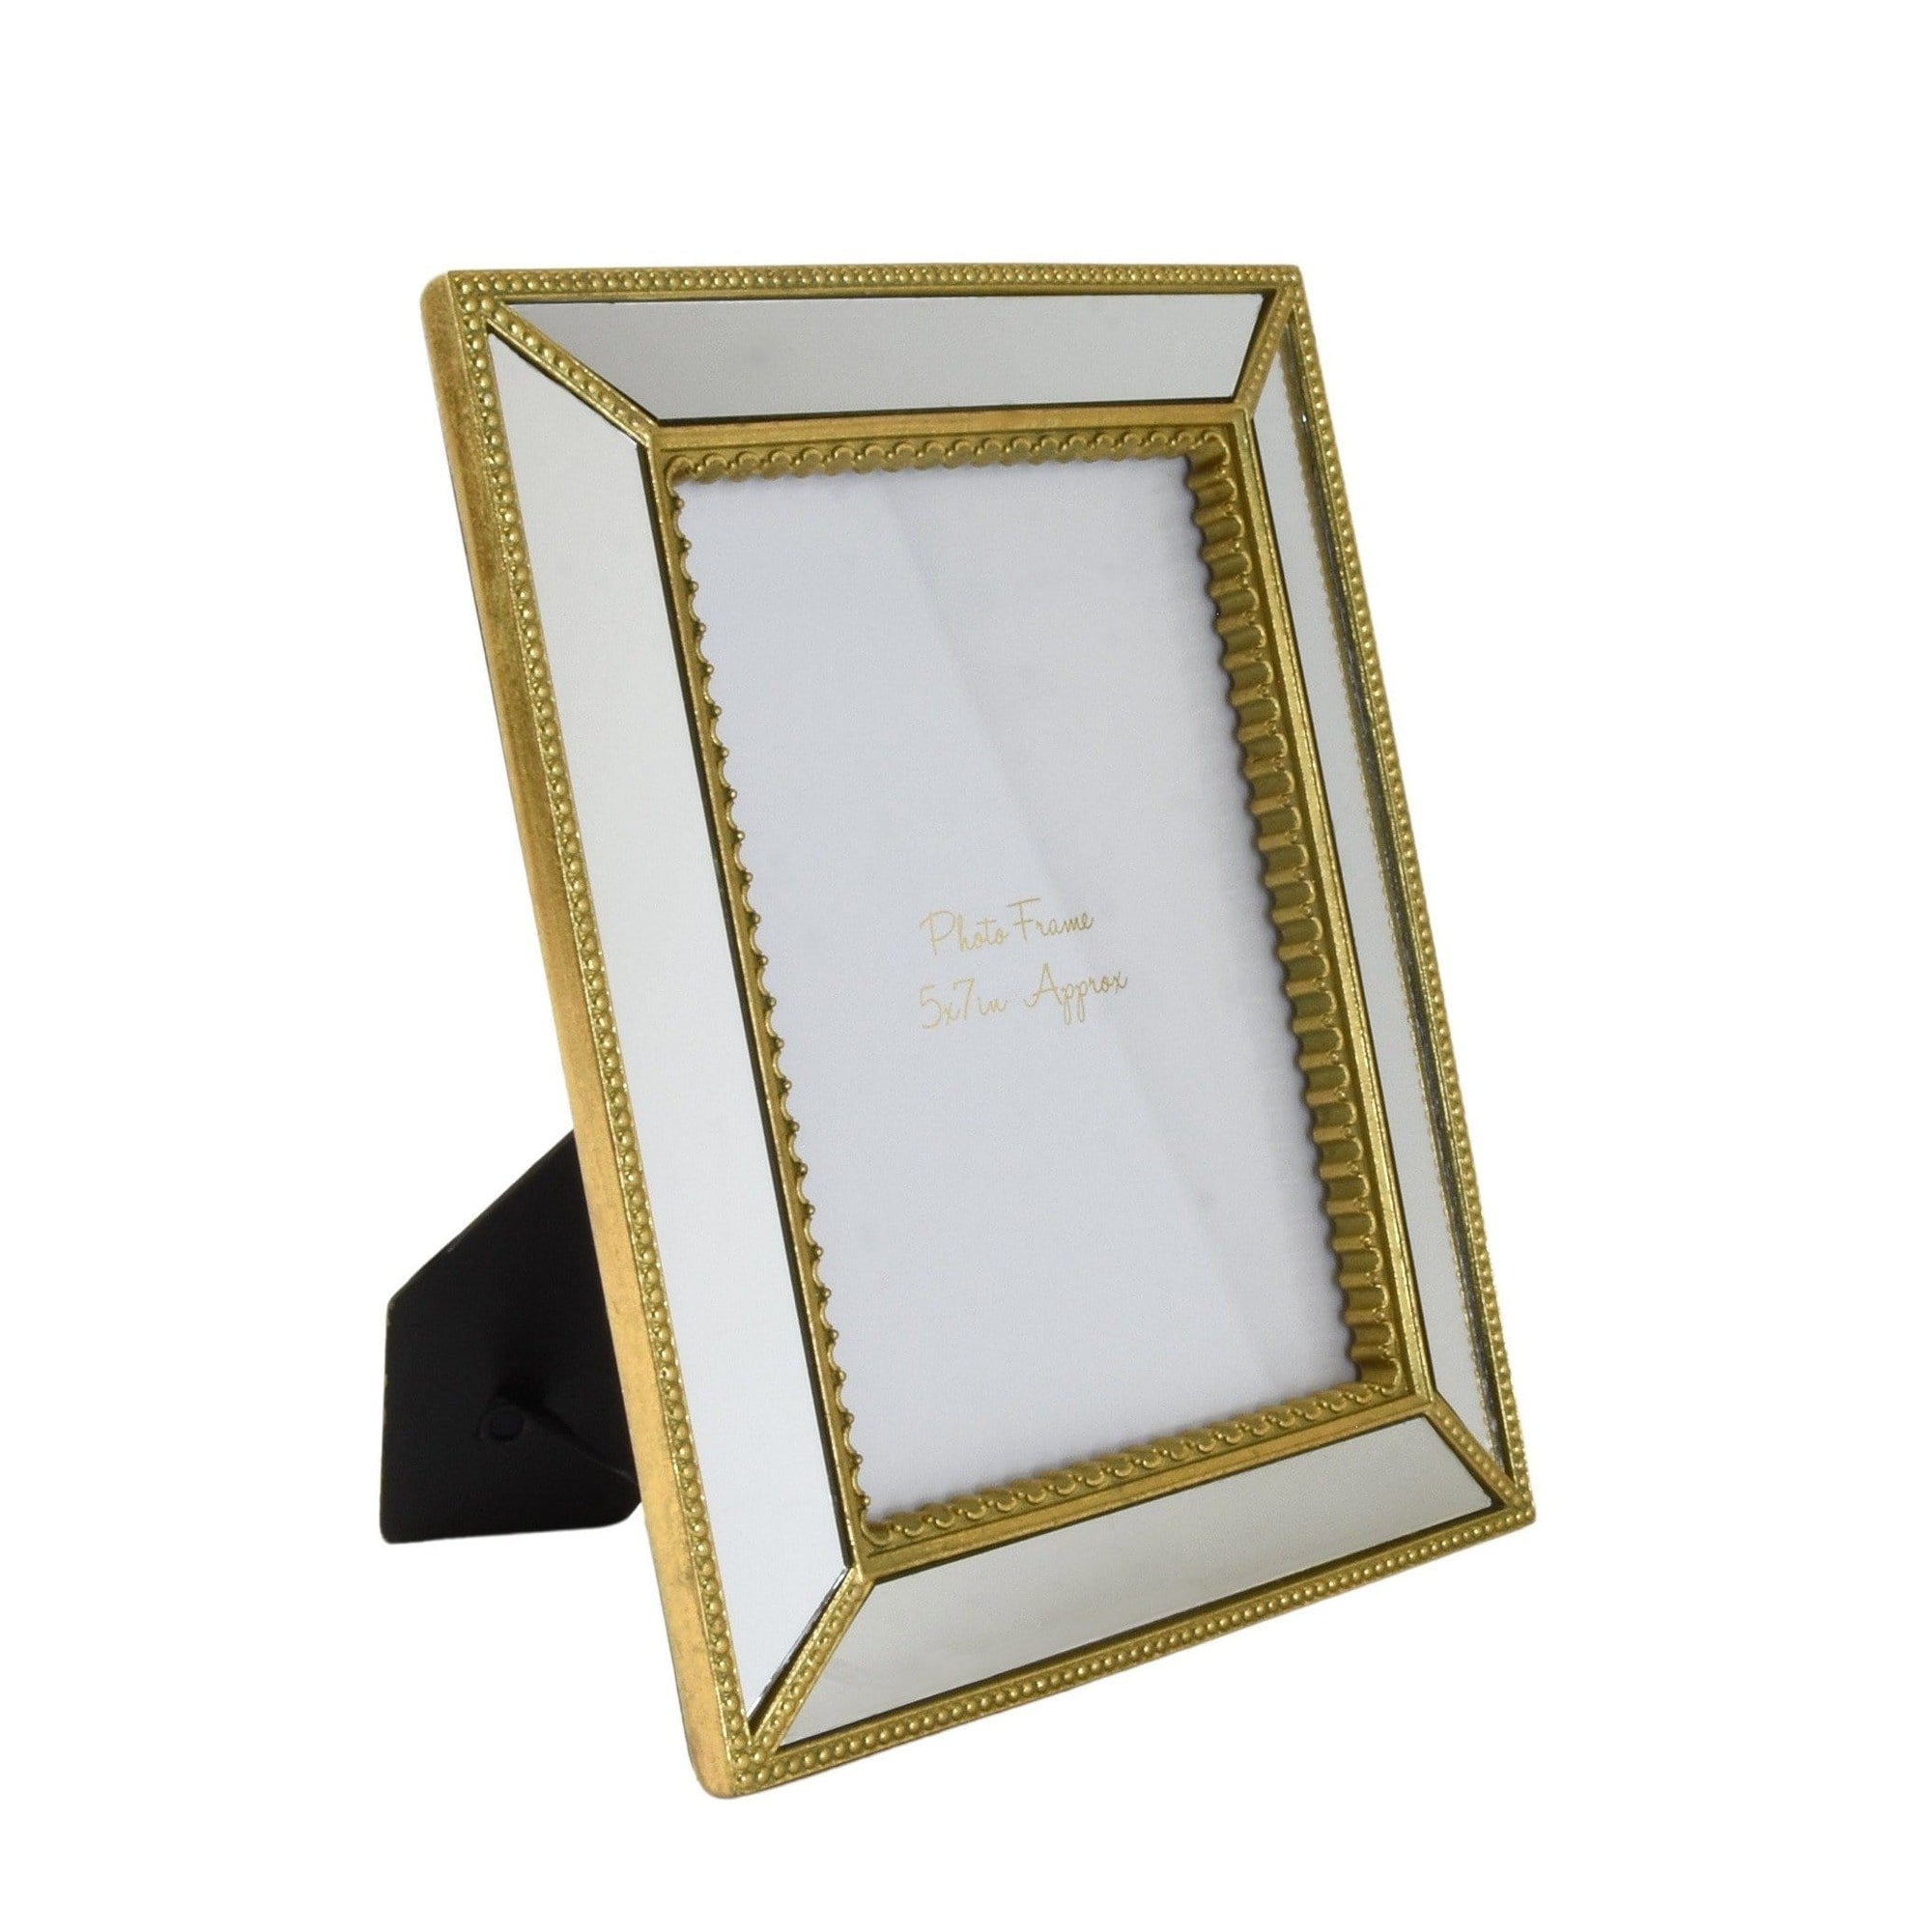 "Ornate Photo Frame with Mirrored Panels and Gold Edging 5 x 7"" 1PK"